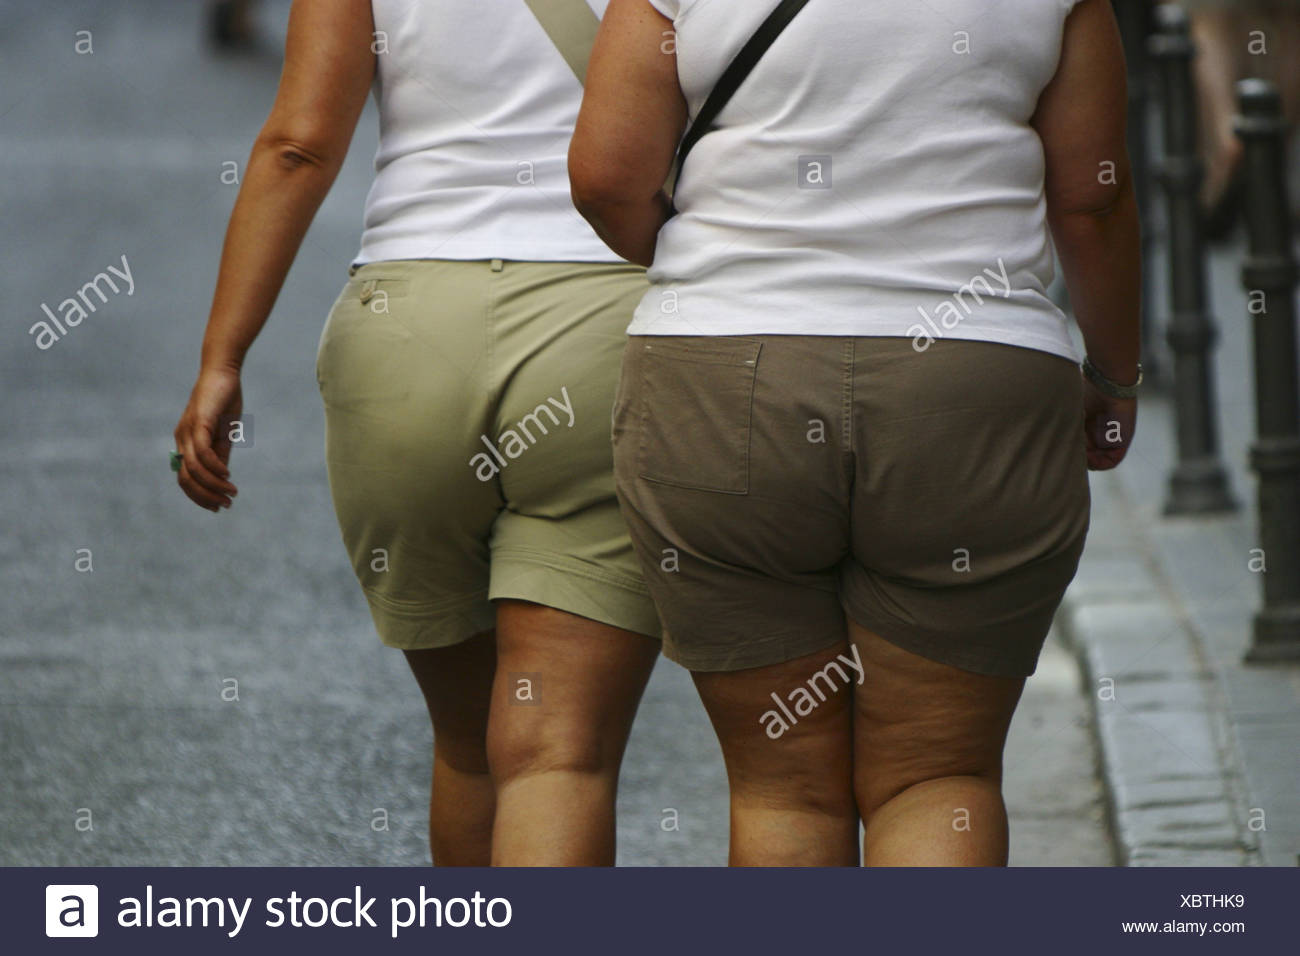 bum bottom buttocks fat stock photos & bum bottom buttocks fat stock